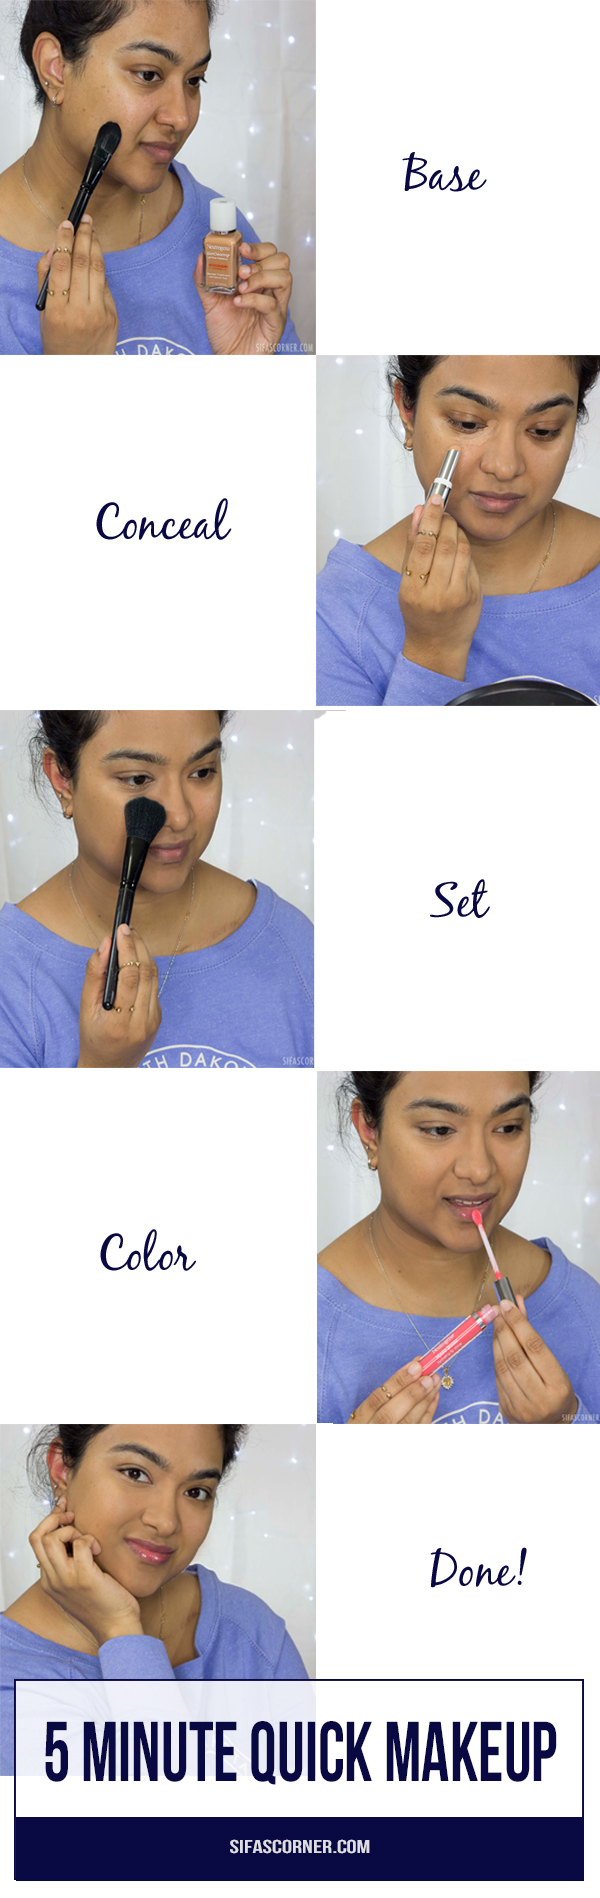 how to quick makeup